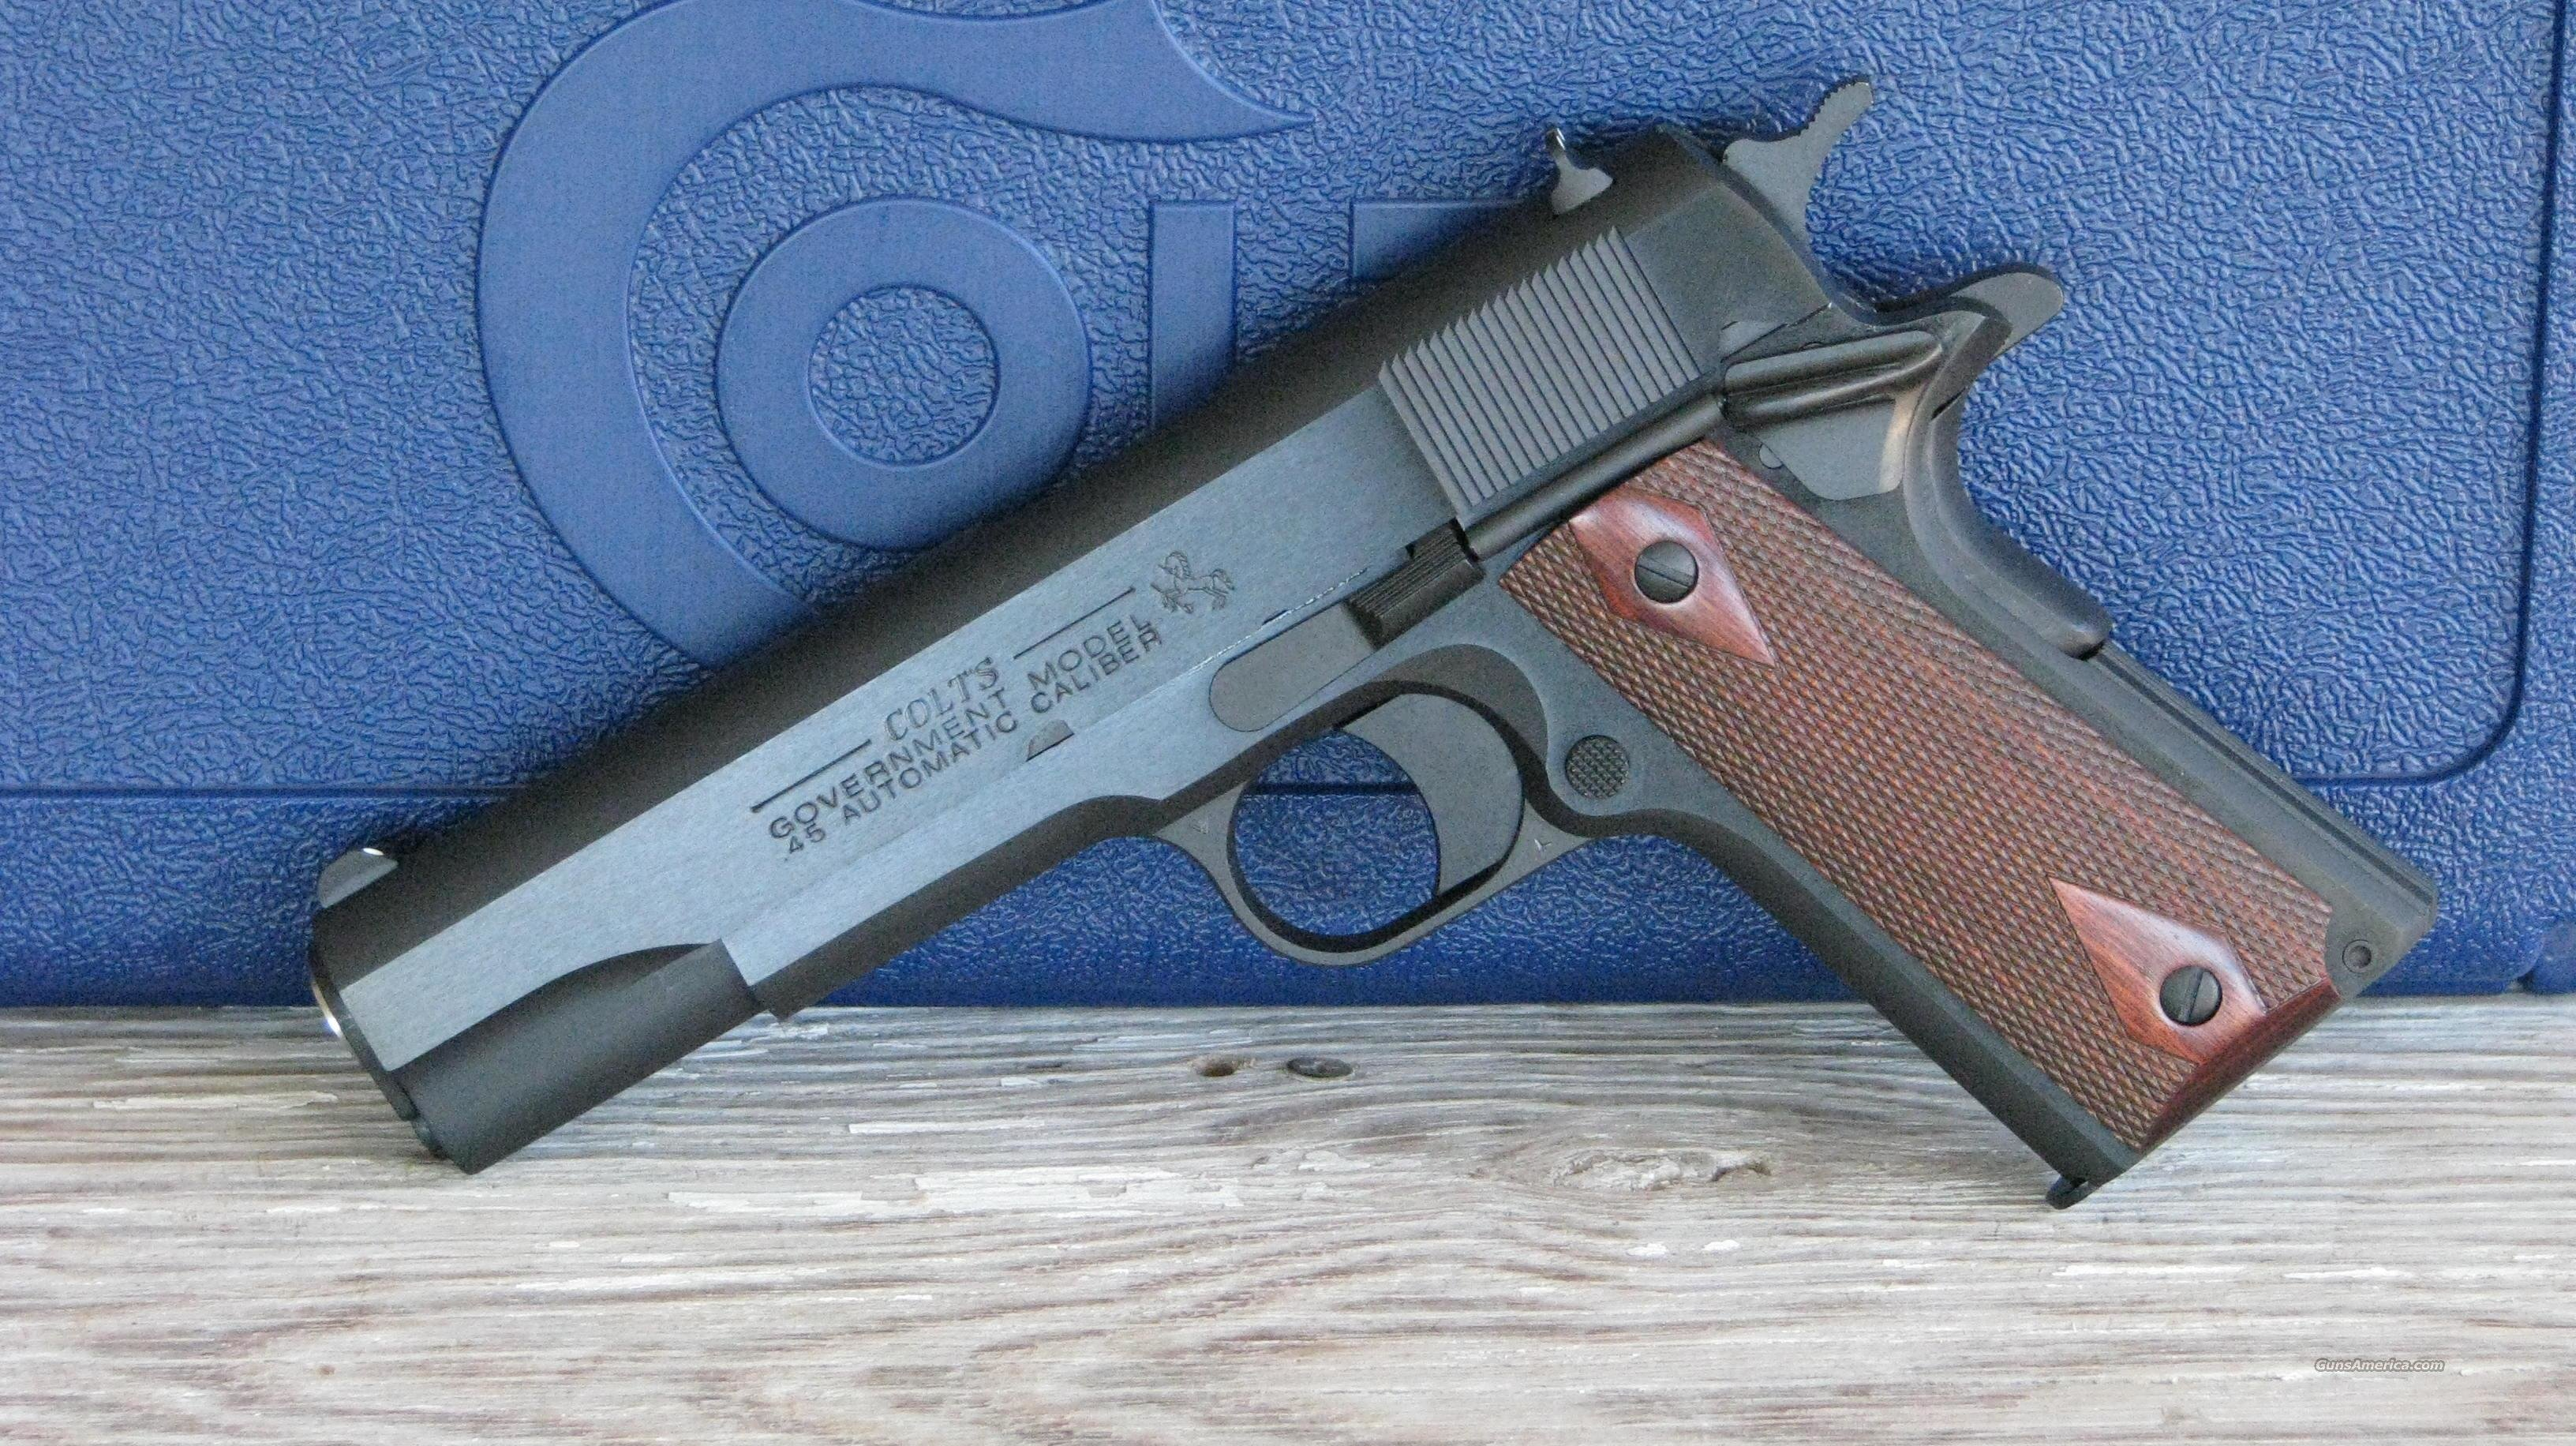 Colt 1911 1991A1 M1911 Government o1991 /EASY PAY $57 MONTHLY  Guns > Pistols > Colt Automatic Pistols (1911 & Var)